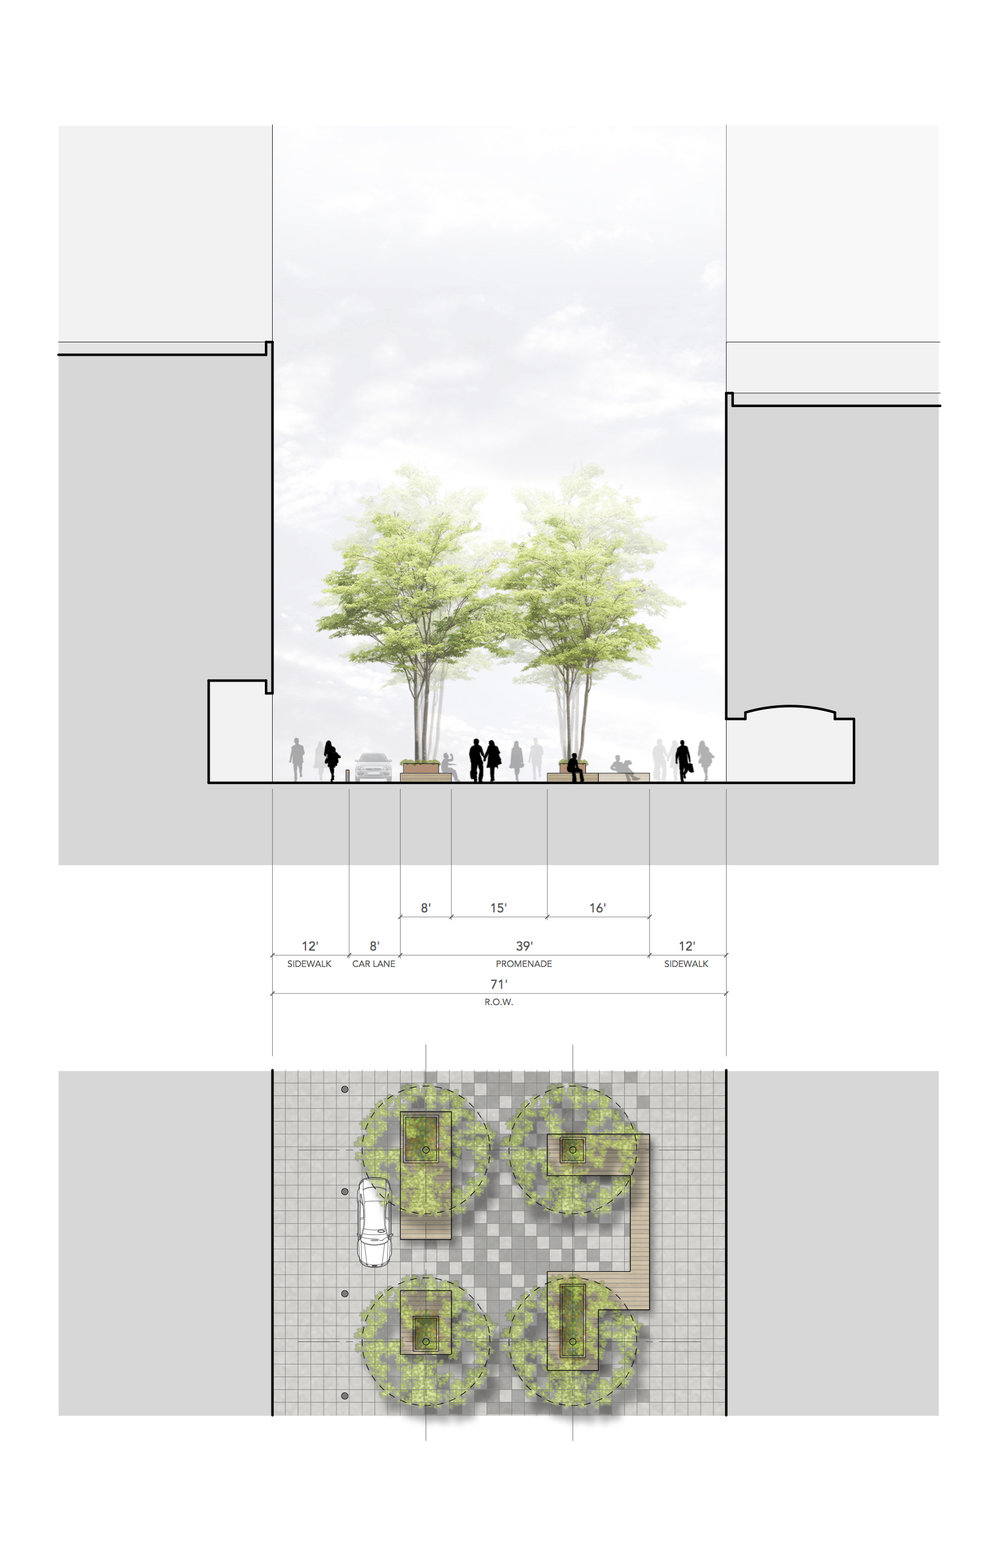 Cross section of block design of NoMad Walk along Broadway, drawing by Dutton Architects